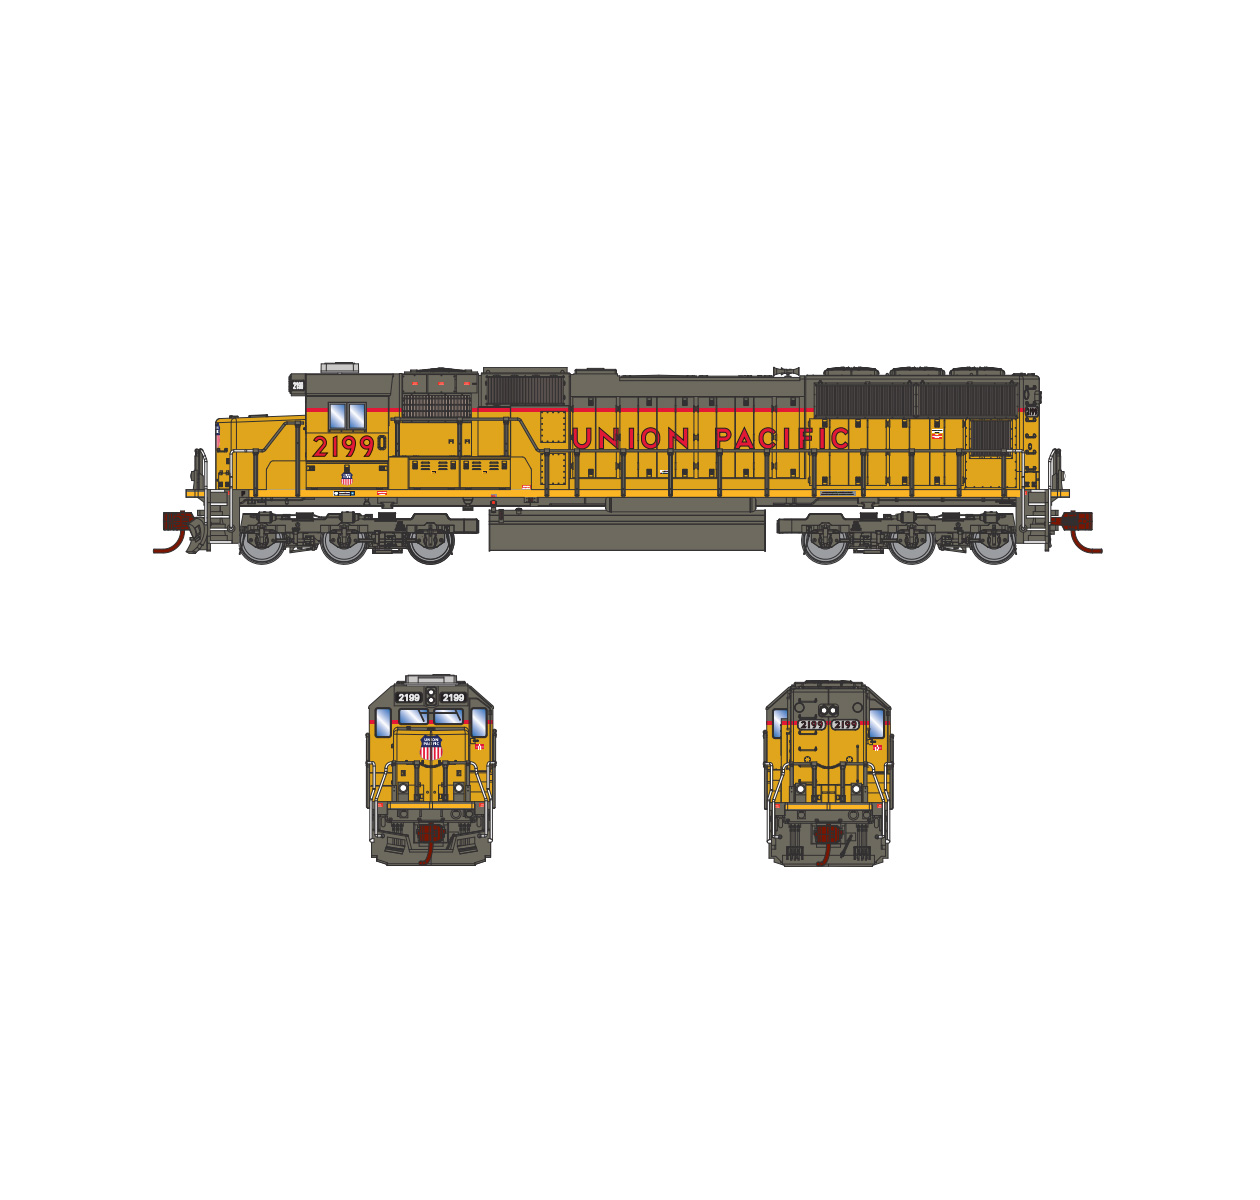 athearn_n_emd_sd70_up_2199